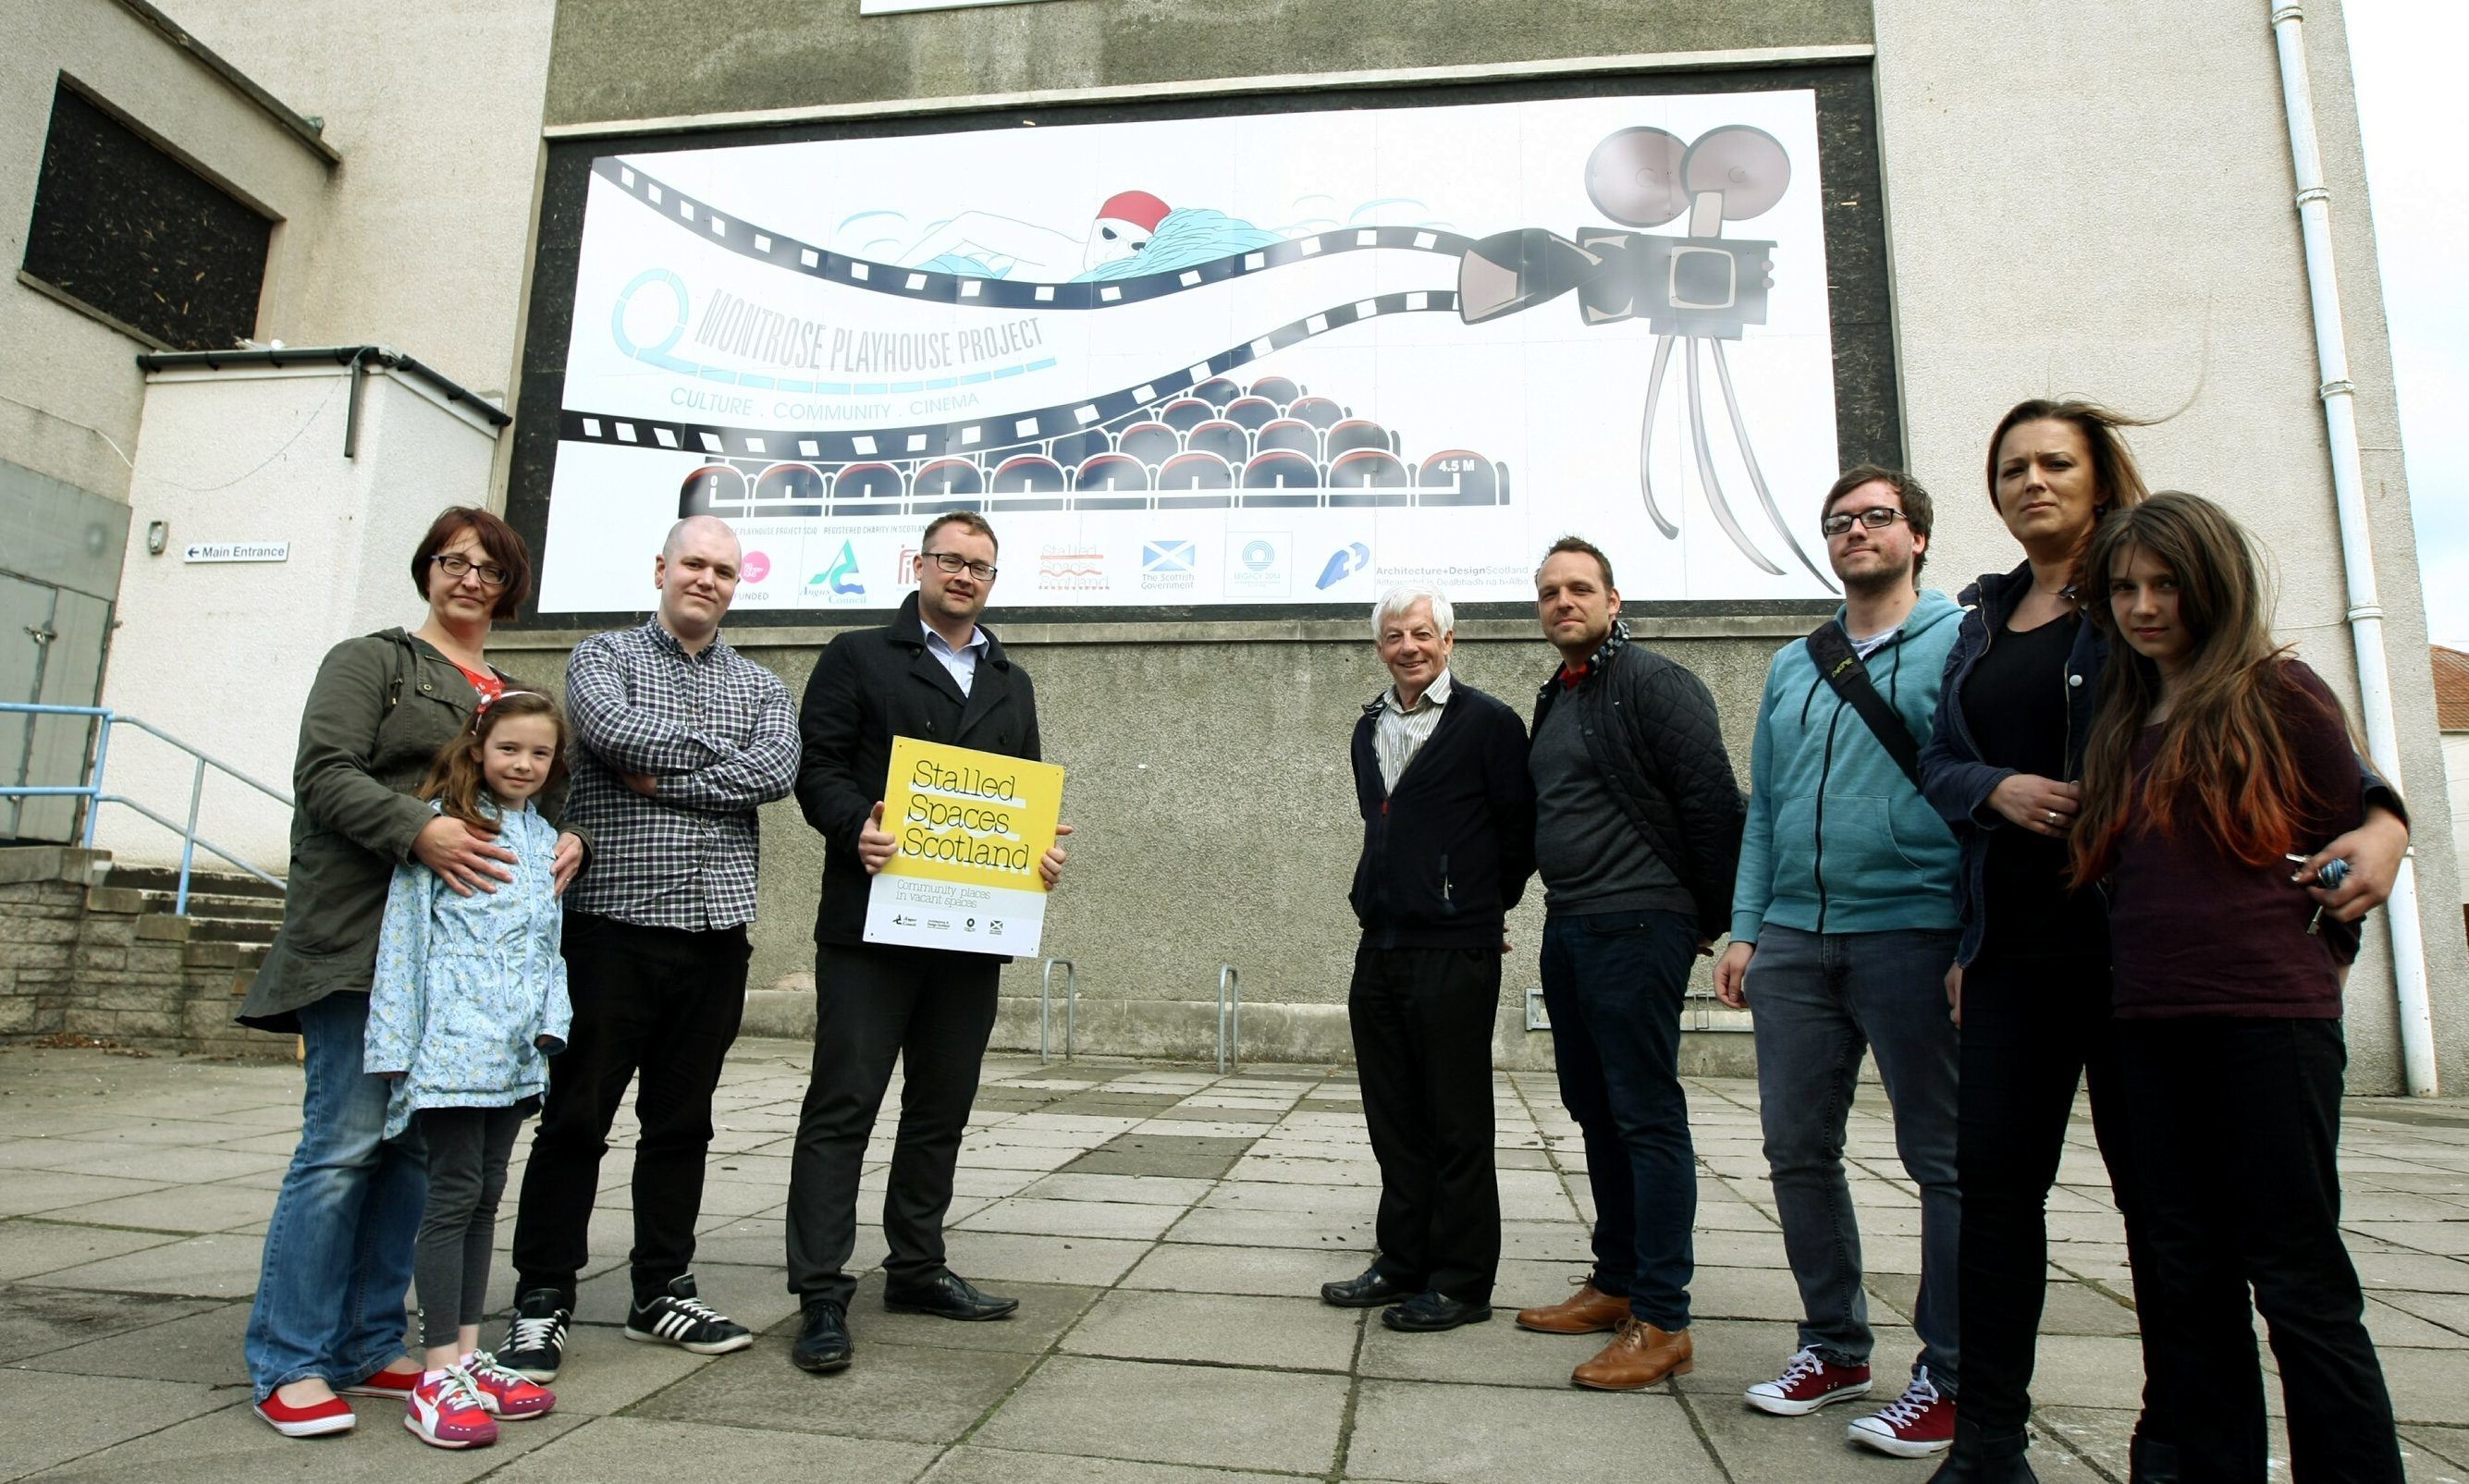 Playhouse project secretary Wendy Ellis with her daughter Maisie, Kyle Stokes of Dundee and Angus College, project chairman David Paton, Councillor David May, Mark Ruxton of Keillor Graphics, Andy Carlisle of Dundee and Angus College and Magda Garas with her daughter Ola in front of the banner.